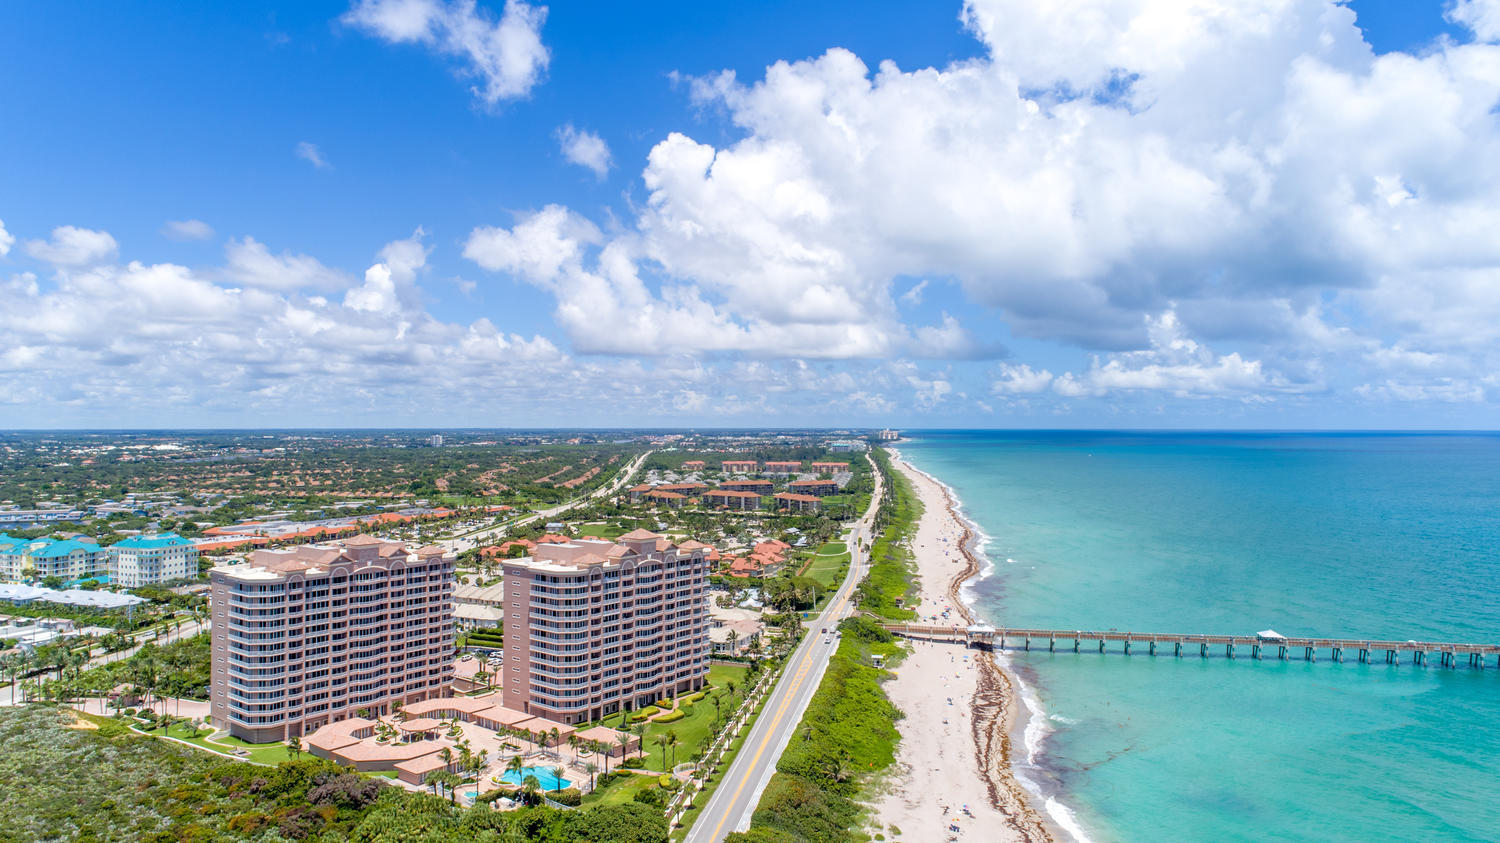 New Home for sale at 750 Ocean Royale Way  in Juno Beach